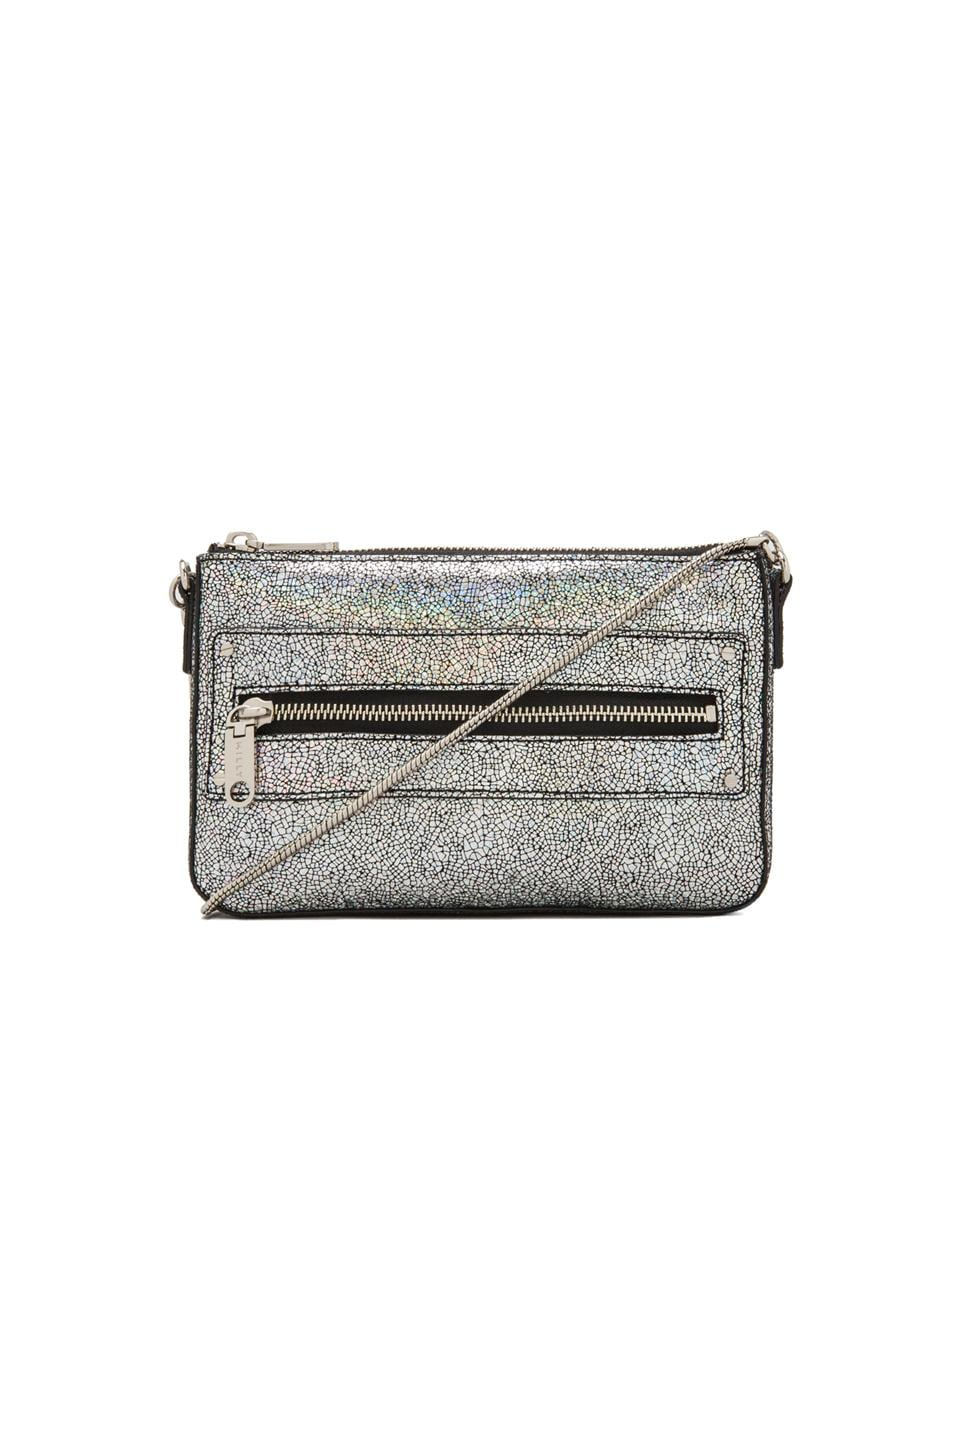 MILLY Delano Metallic Collection in Silver